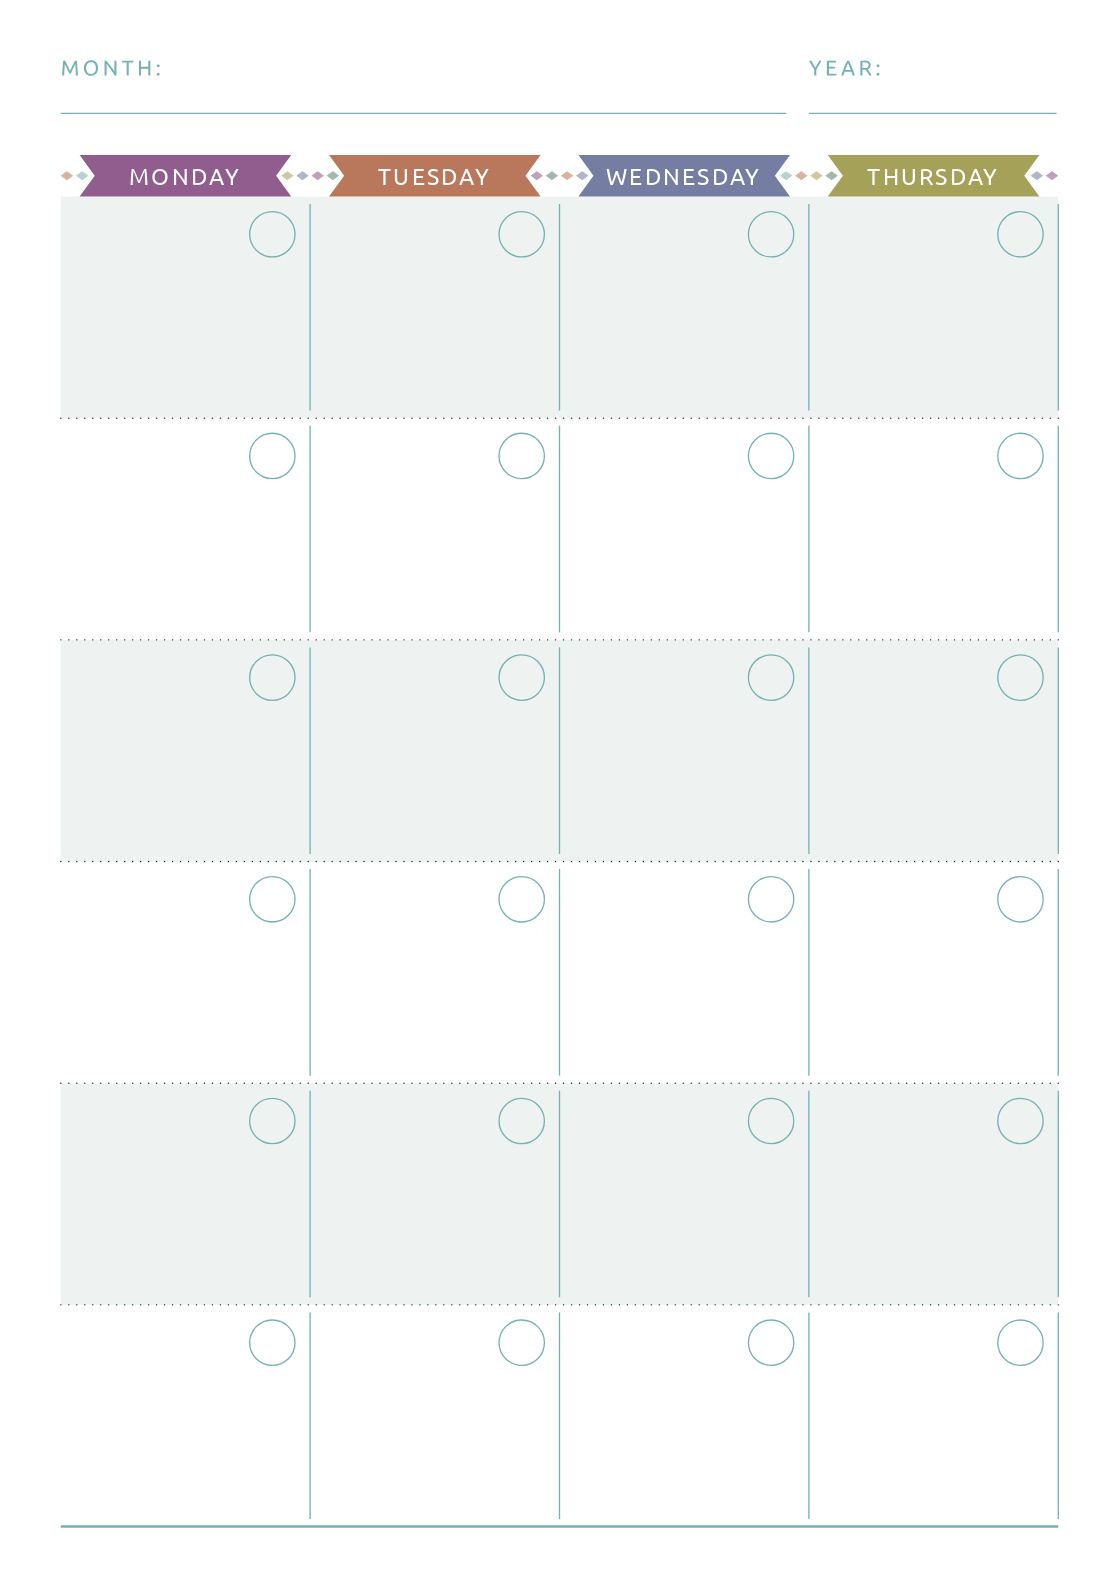 Undated Planner Calendar Template In Casual Style. This Layout For Two Week Calendar